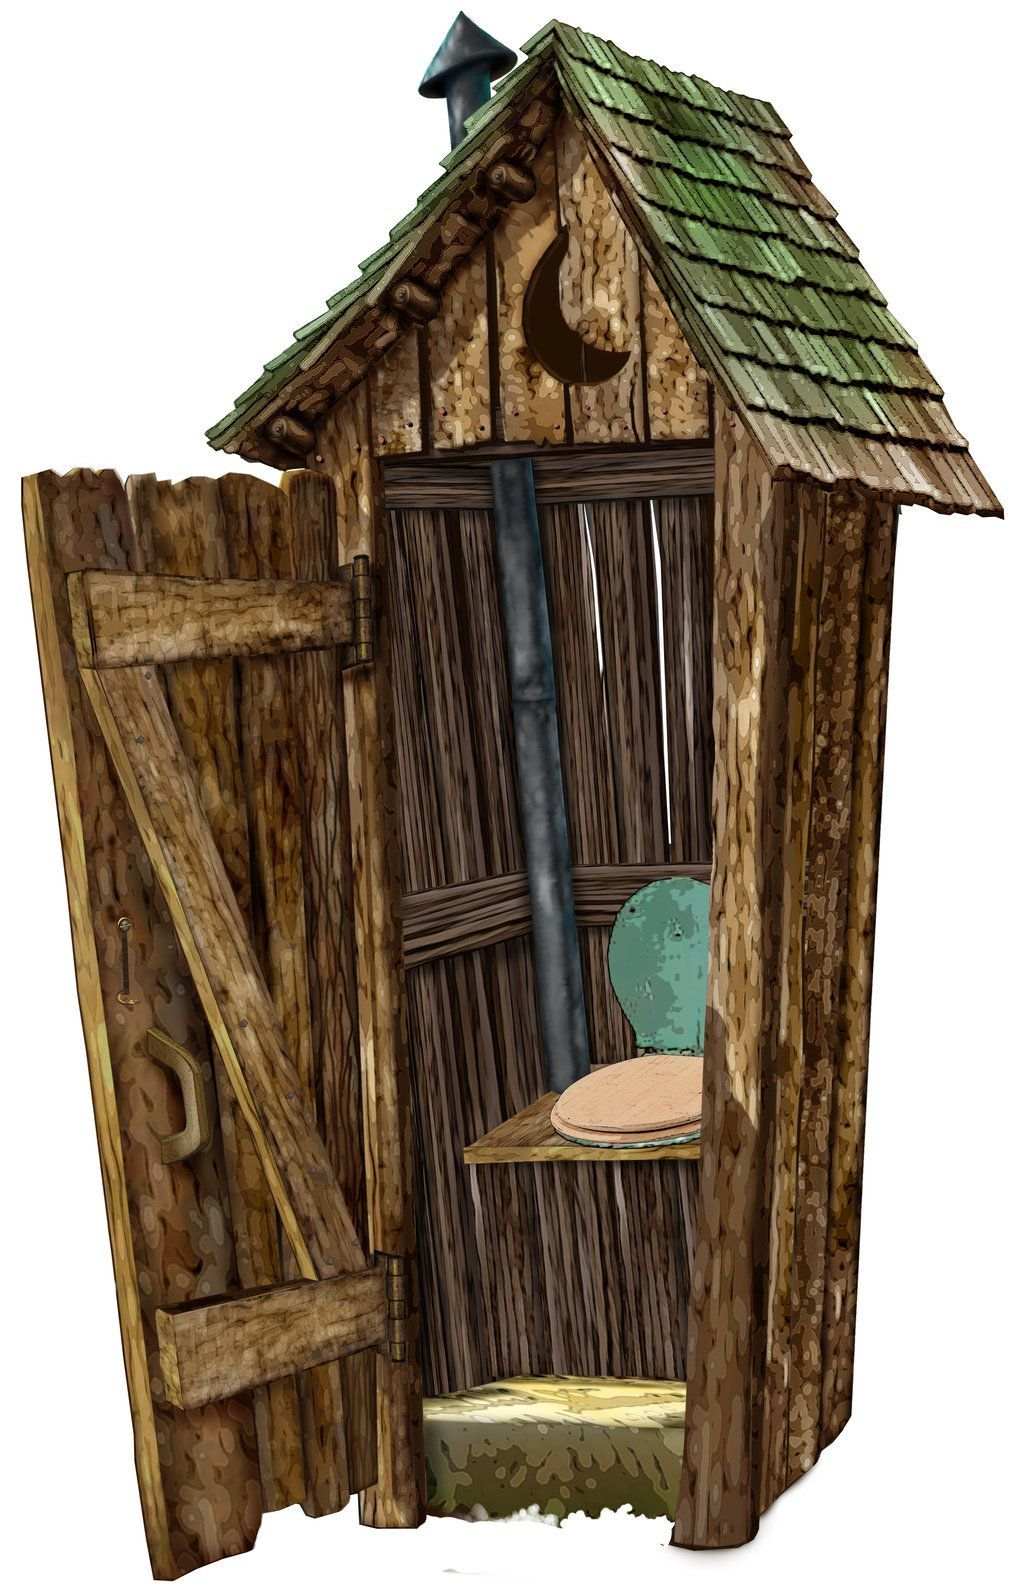 Outhouse pictures clipart transparent download Outhouse clipart 6 » Clipart Portal transparent download